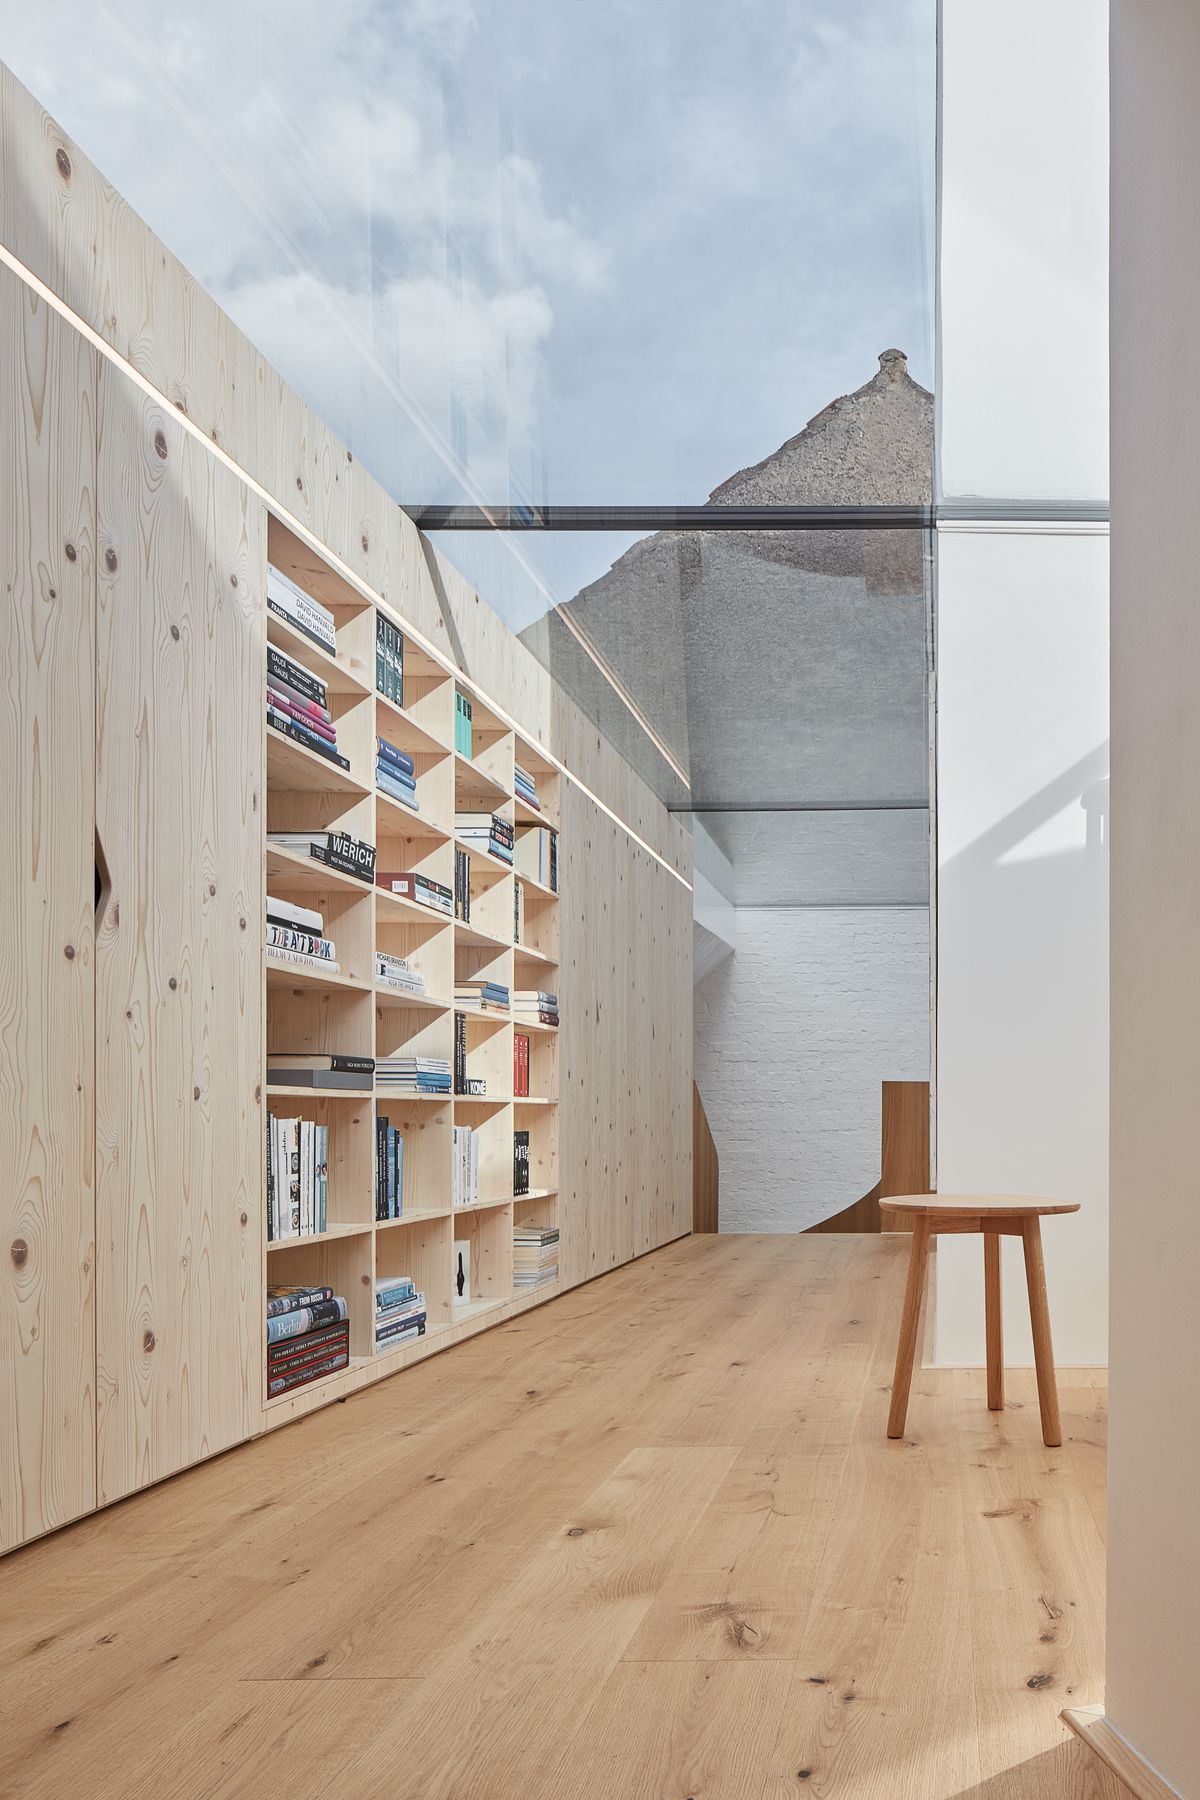 Room with built-in bookshelves and a ceiling made of glass.